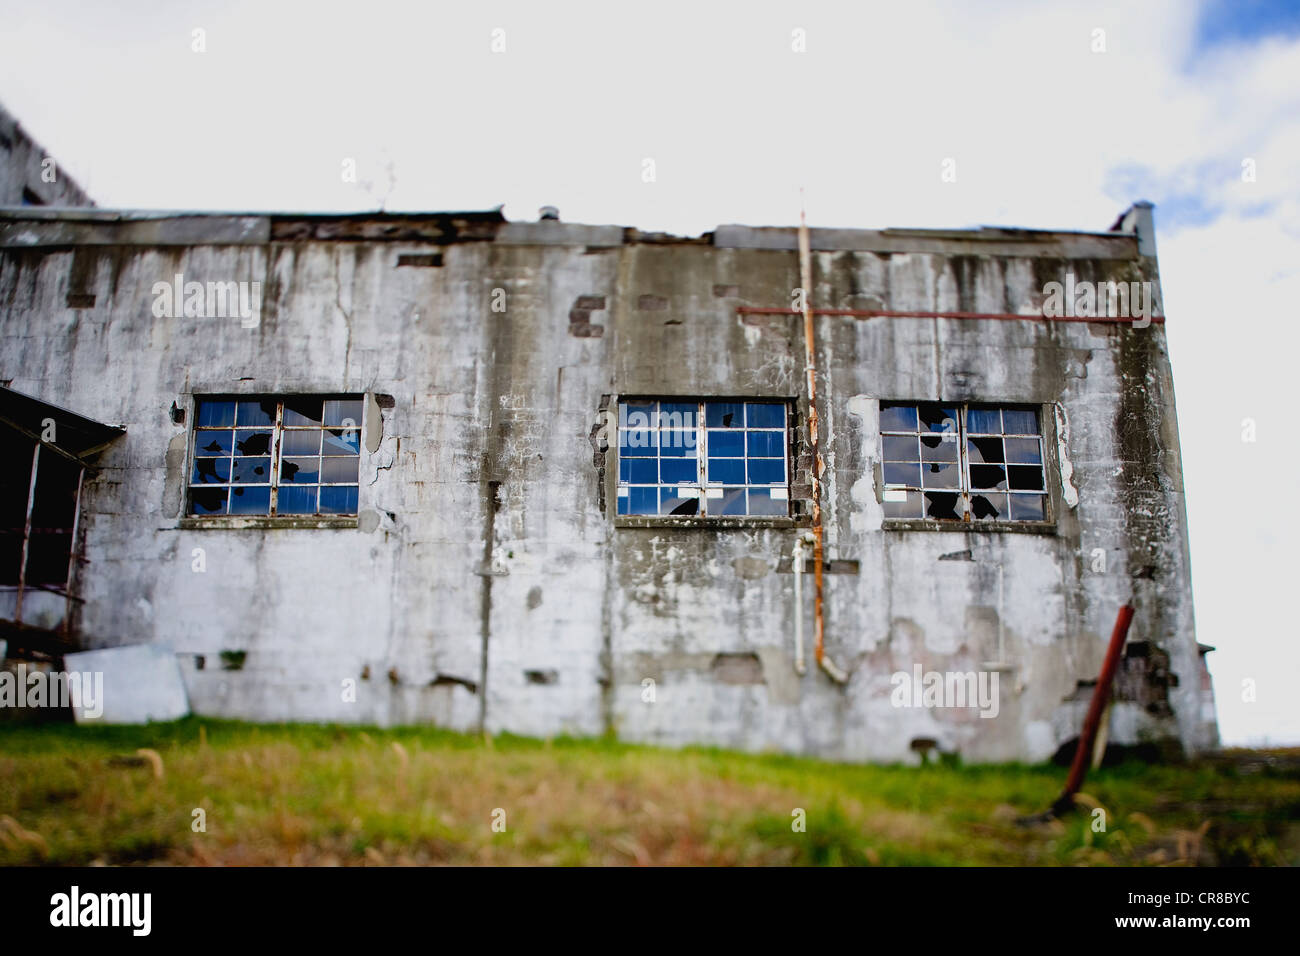 Run down processing plant shot shortly before demolition, tilt shift - Stock Image